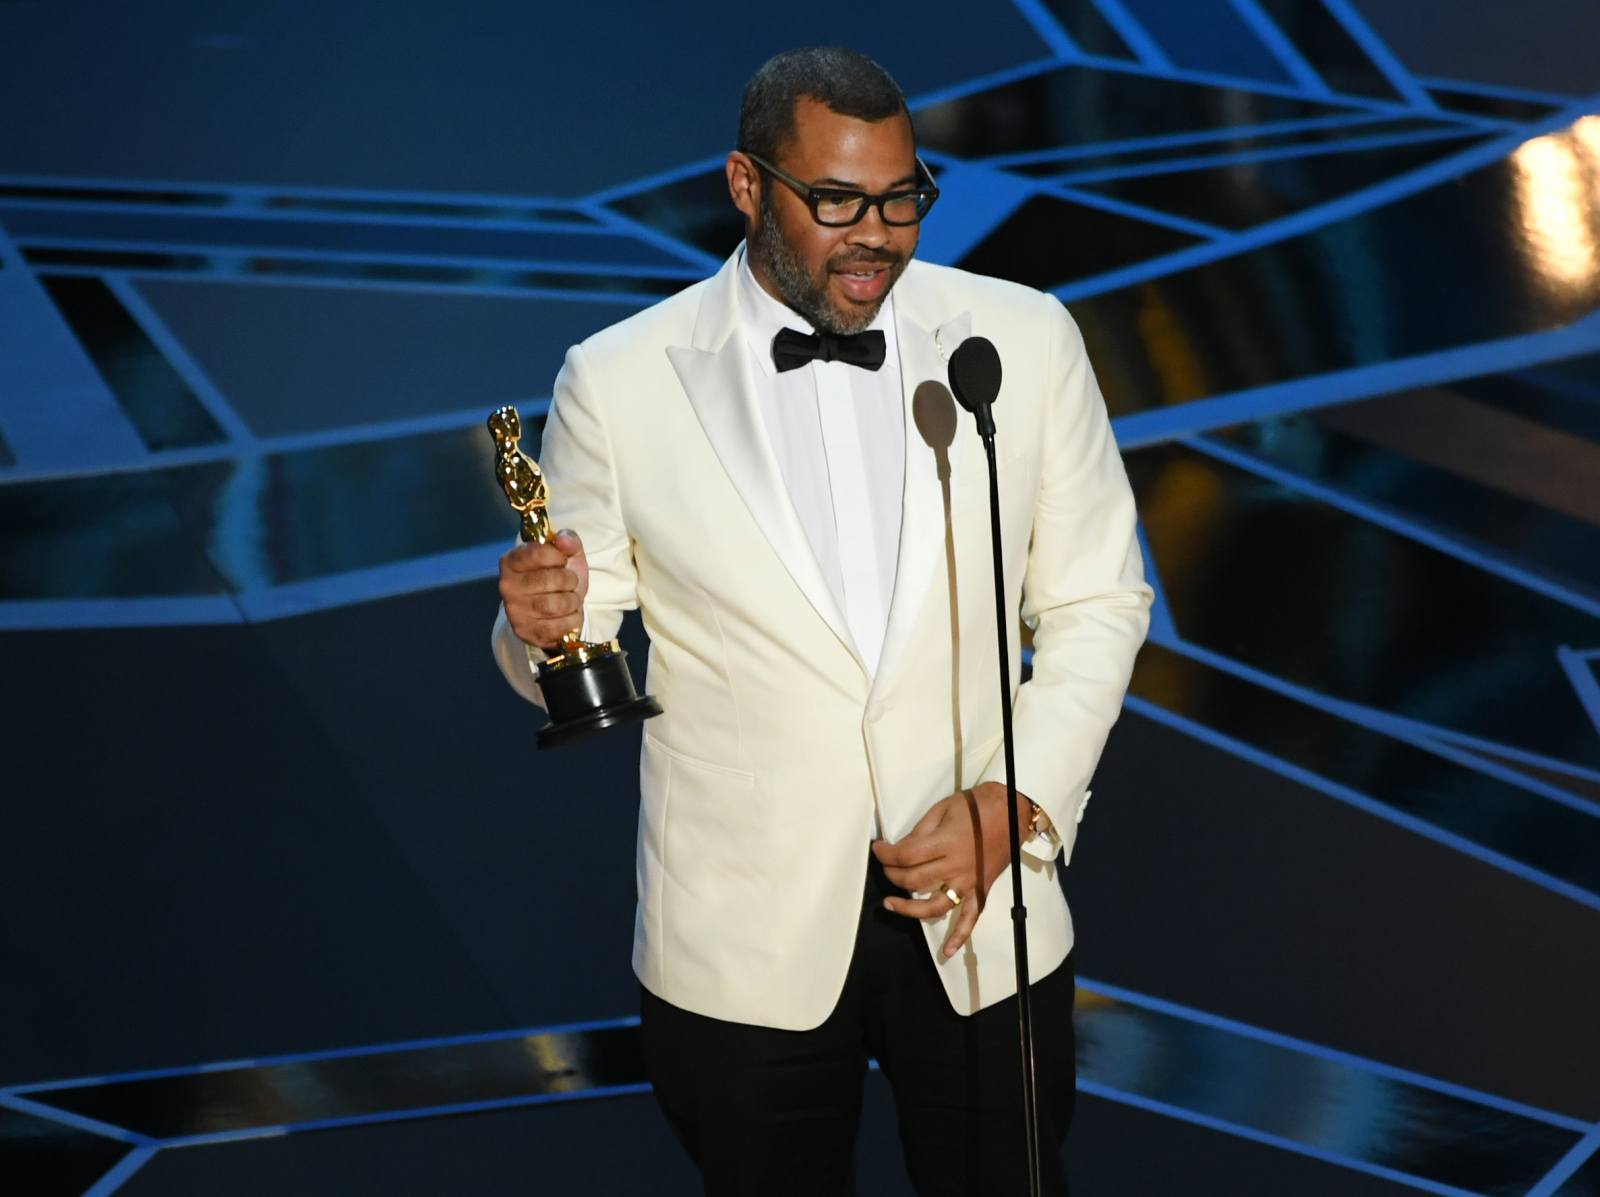 Jordan Peele (Fot. Kevin Winter, Getty Images)